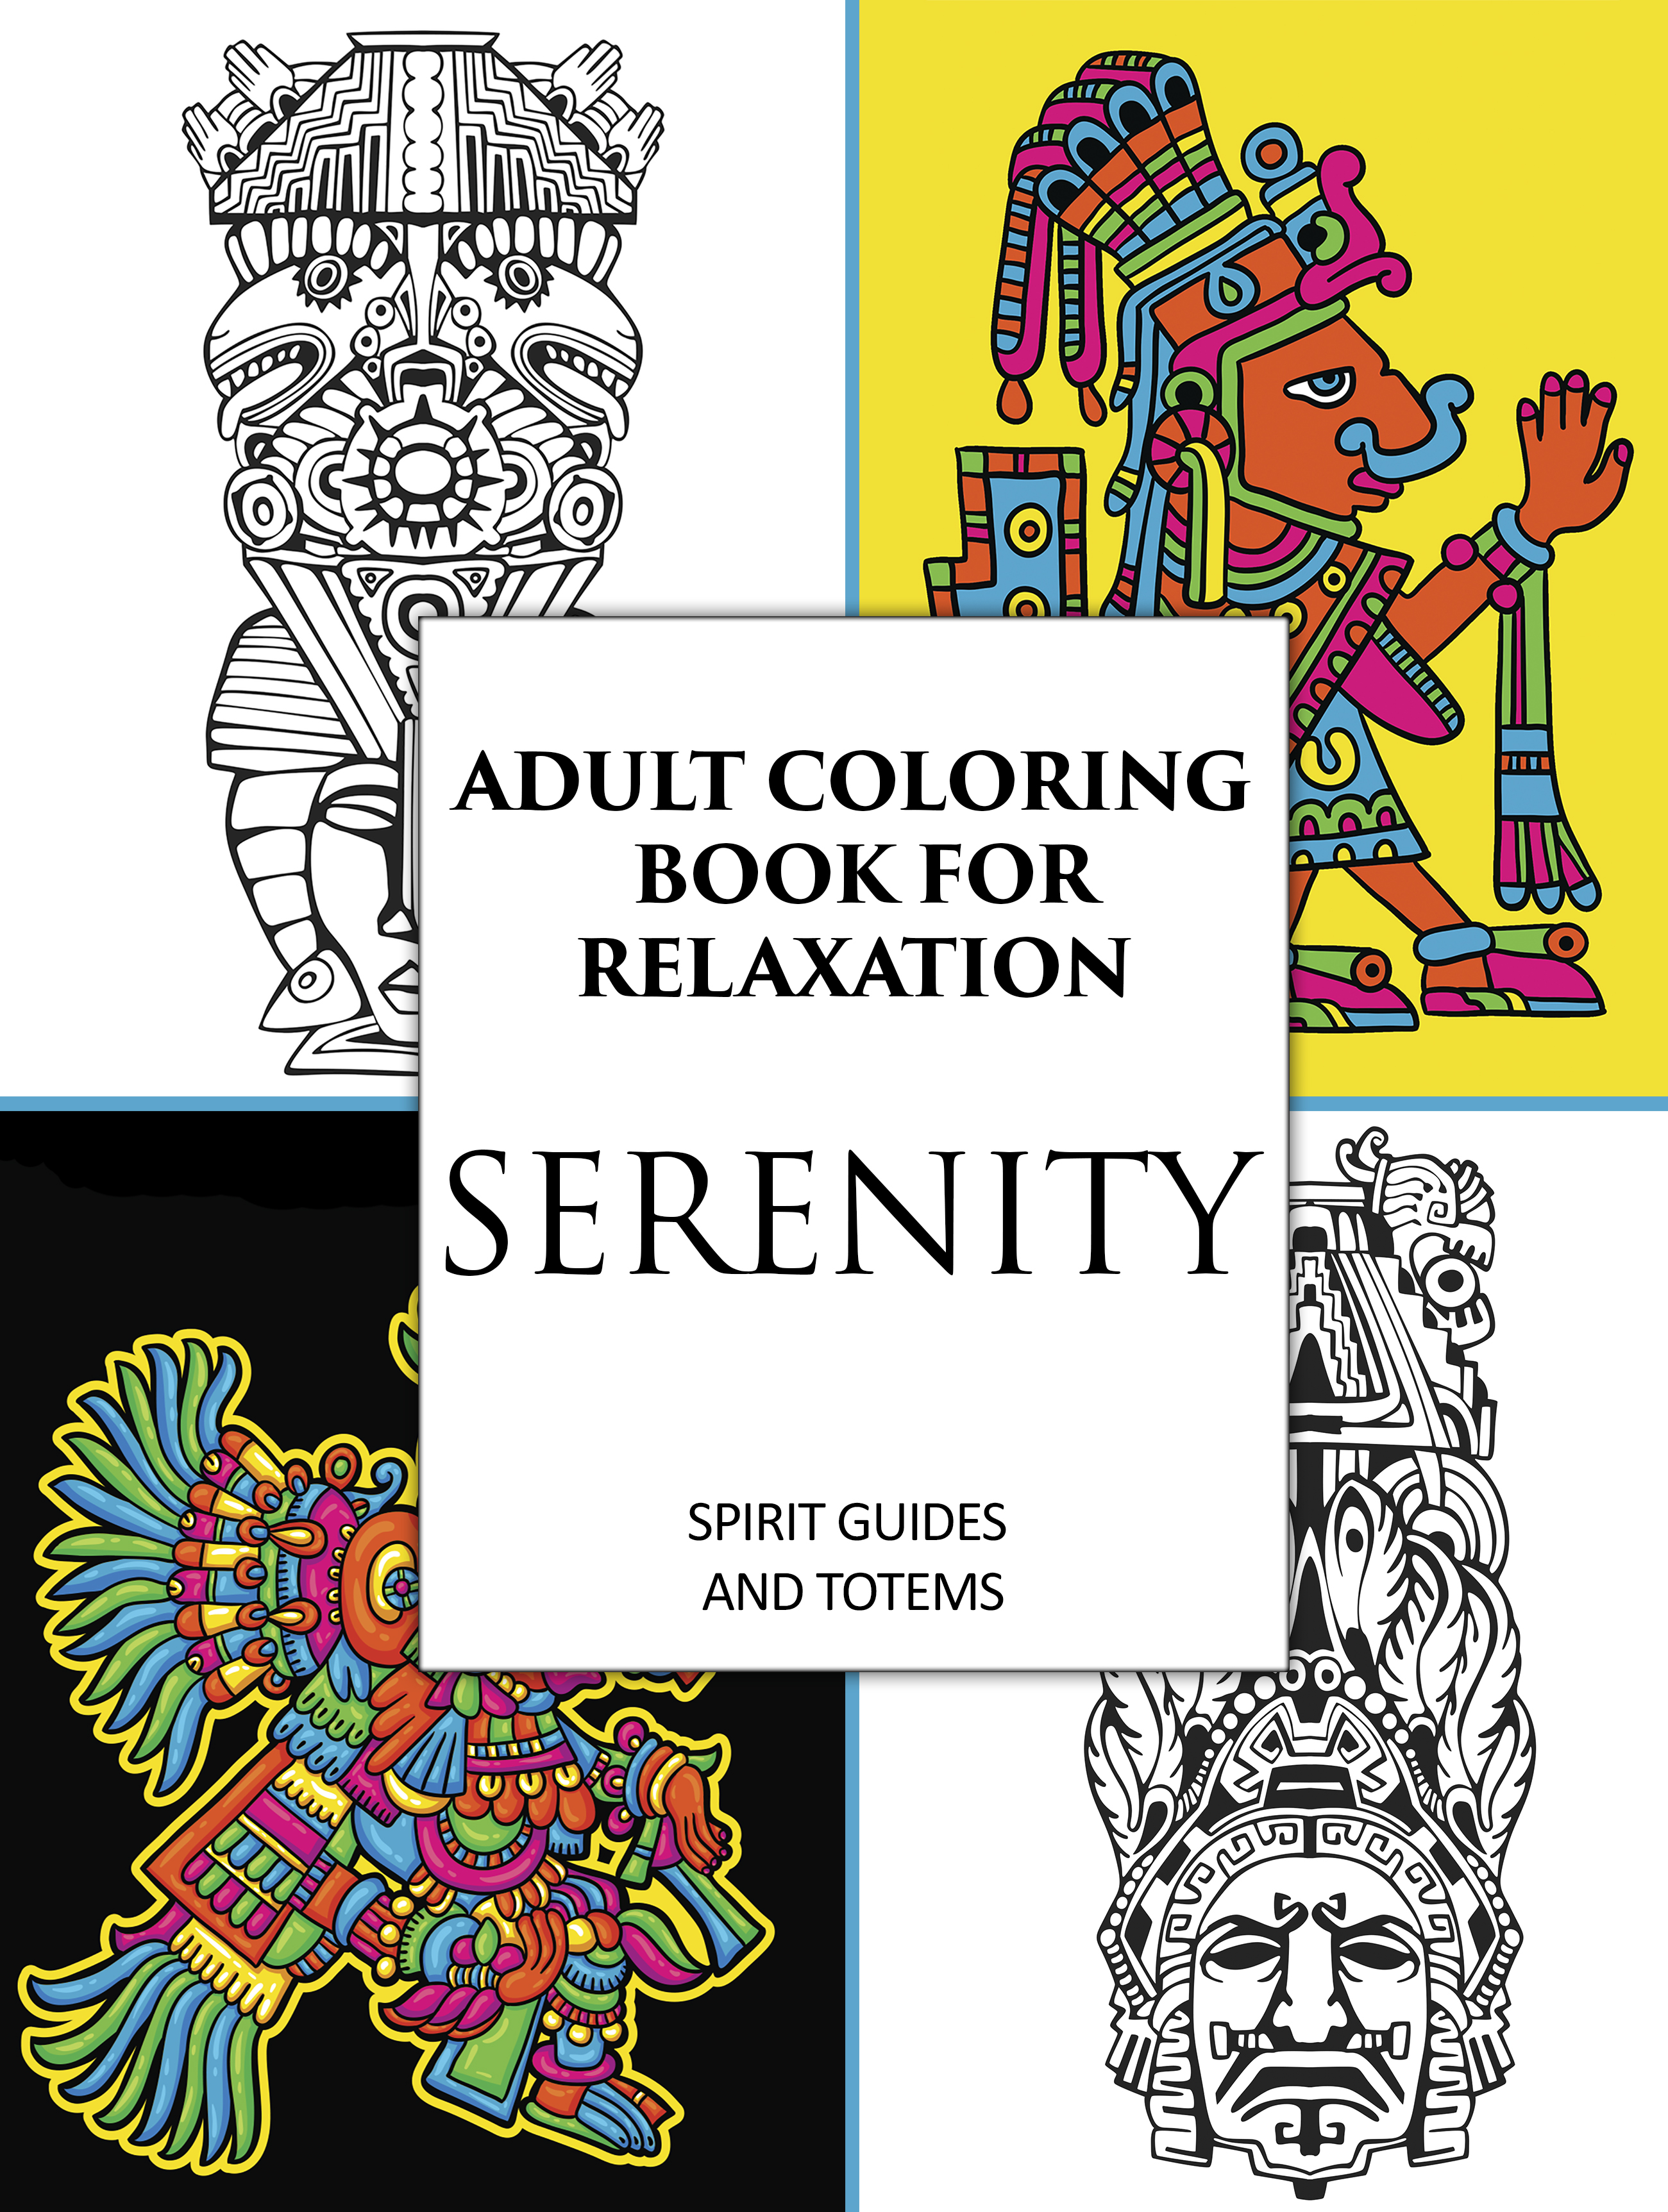 Adult Coloring Book For Relaxation Serenity Spirit Guides Totems